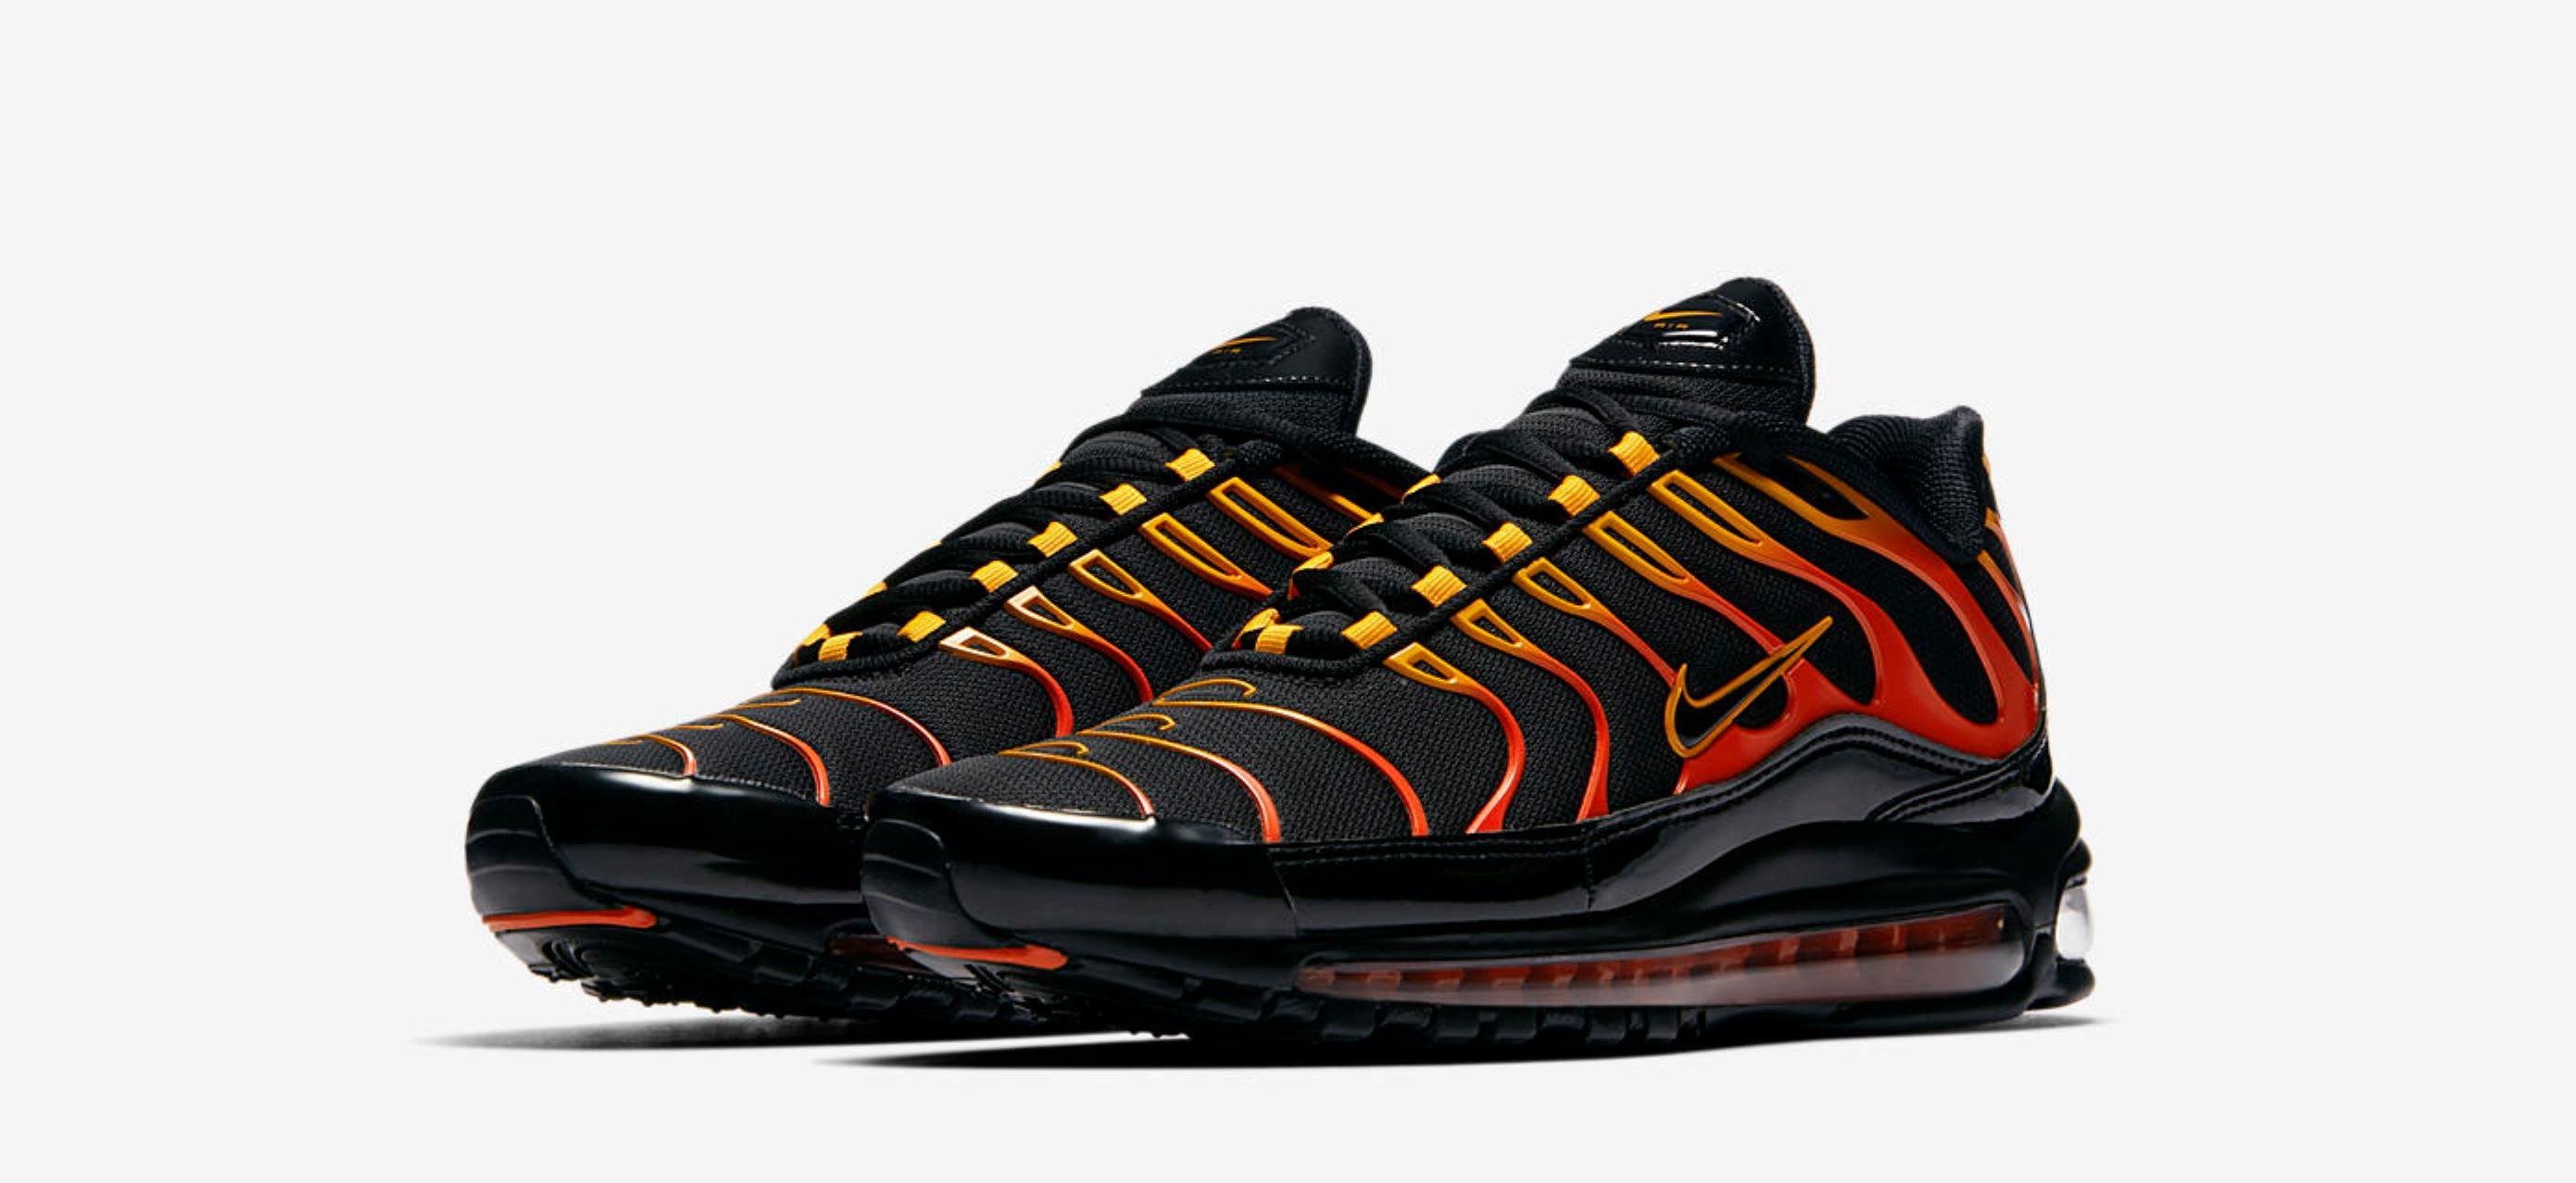 preview of best sale reasonably priced Flame On with the Nike Air Max Plus 97 'Shock Orange ...